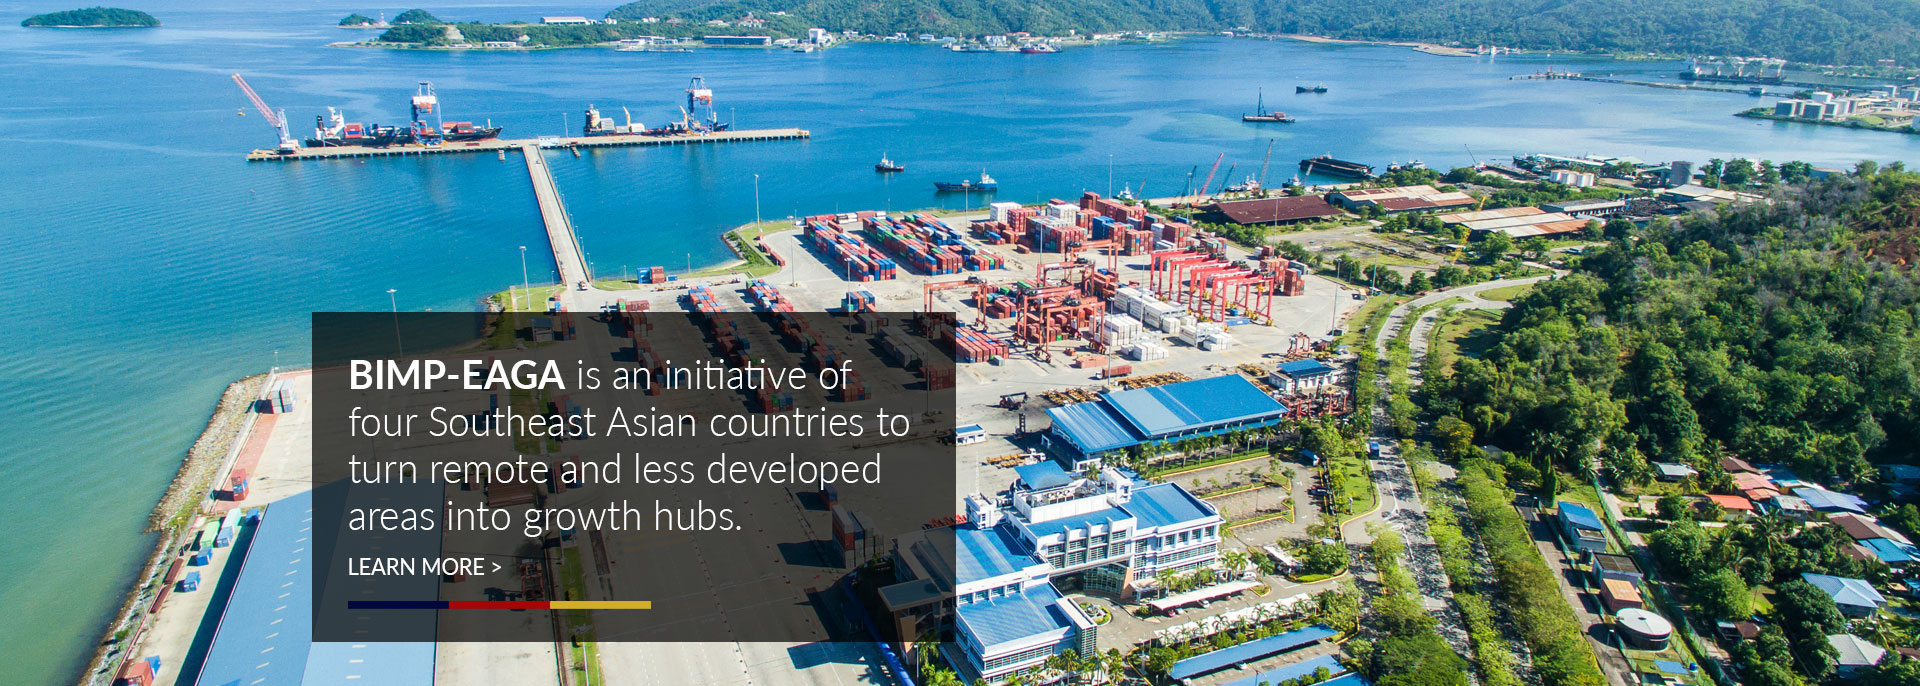 BIMP-EAGA is an initiative of four Southeast Asian countries to turn remote and poor areas into growth hubs.